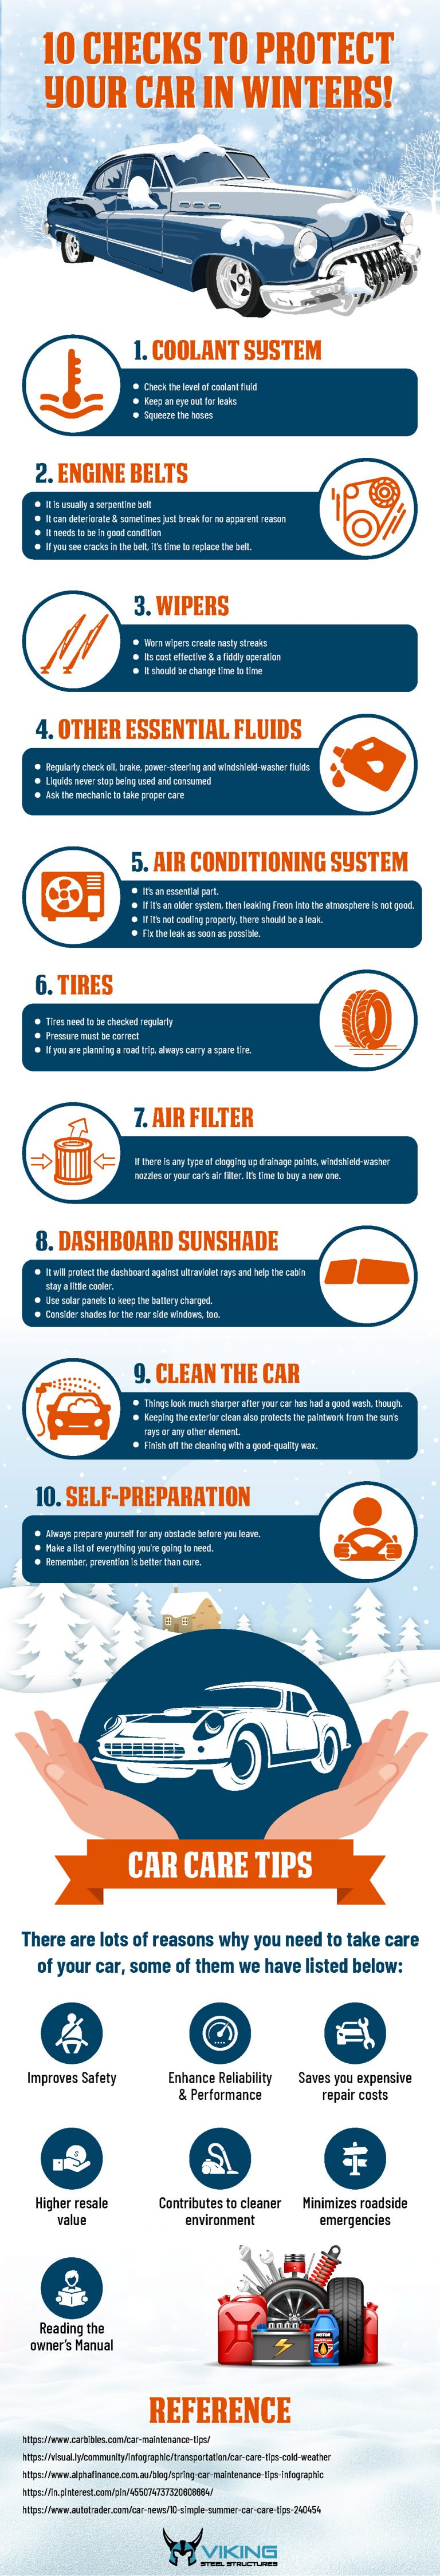 10 Checks to protect your car in Winter!